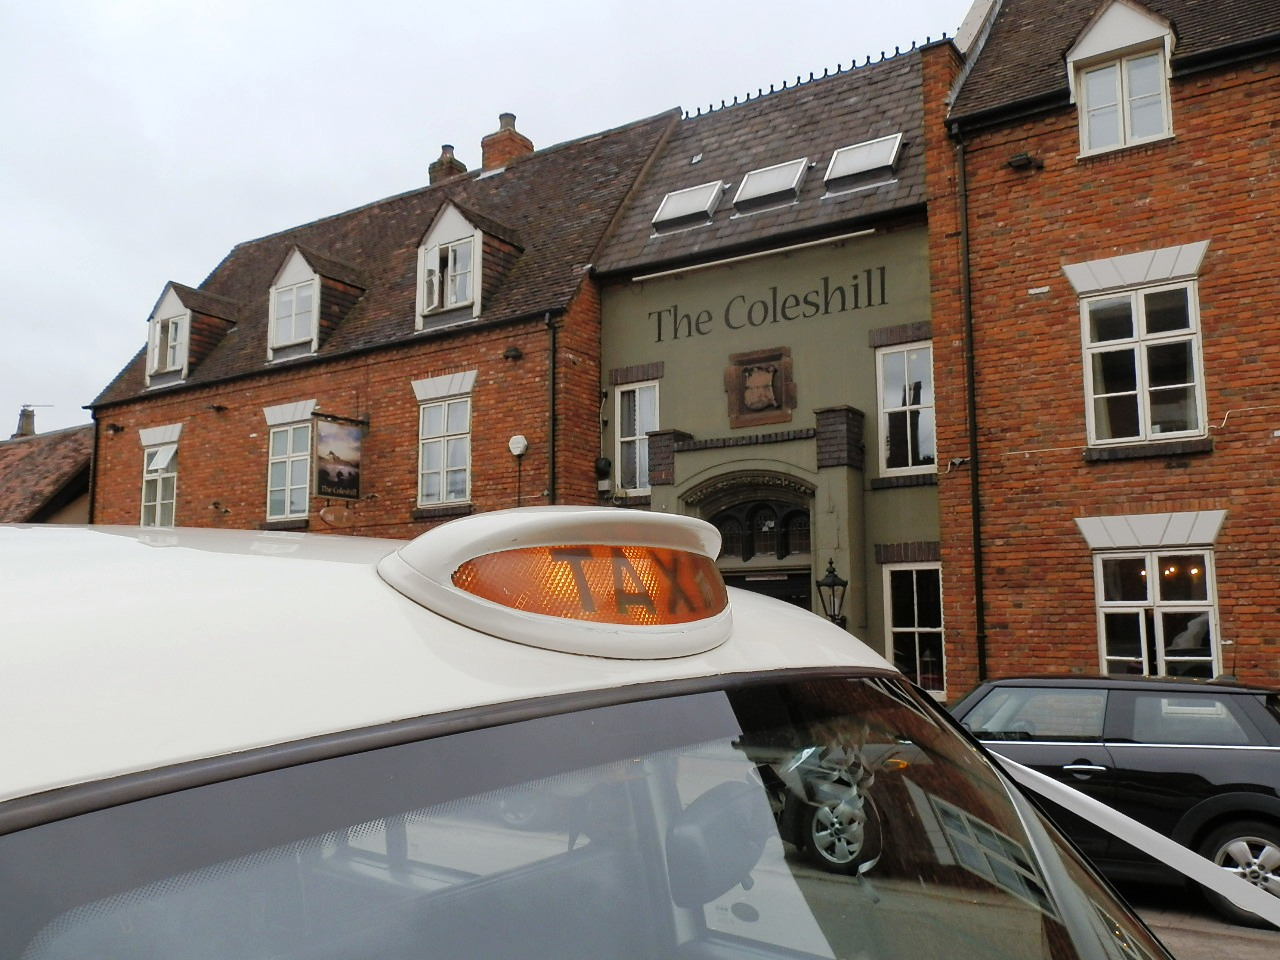 London Taxi Wedding car waiting outside The Coleshill Hotel